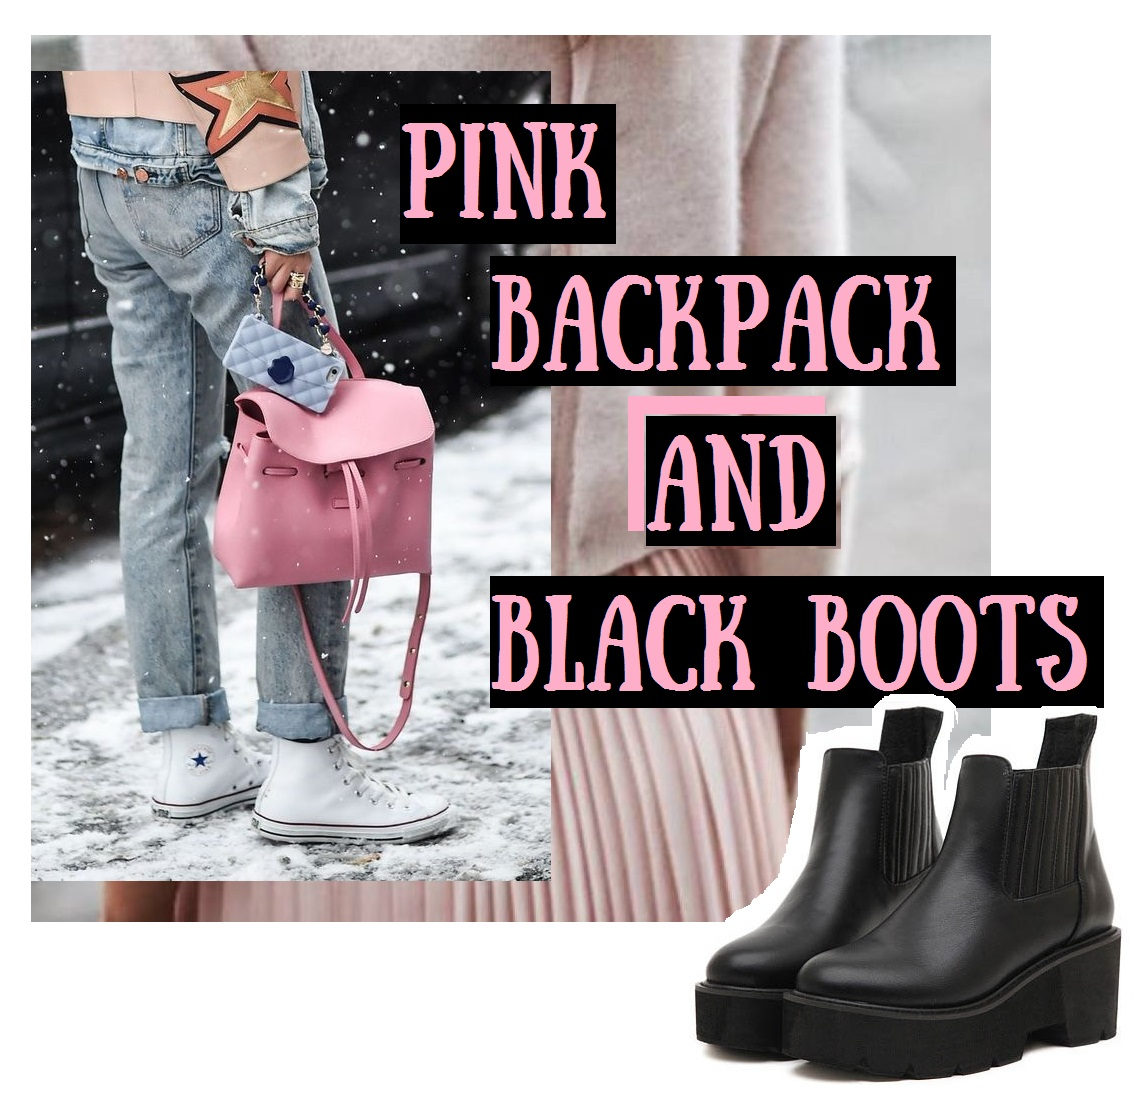 pink-backpack-and-black-boots